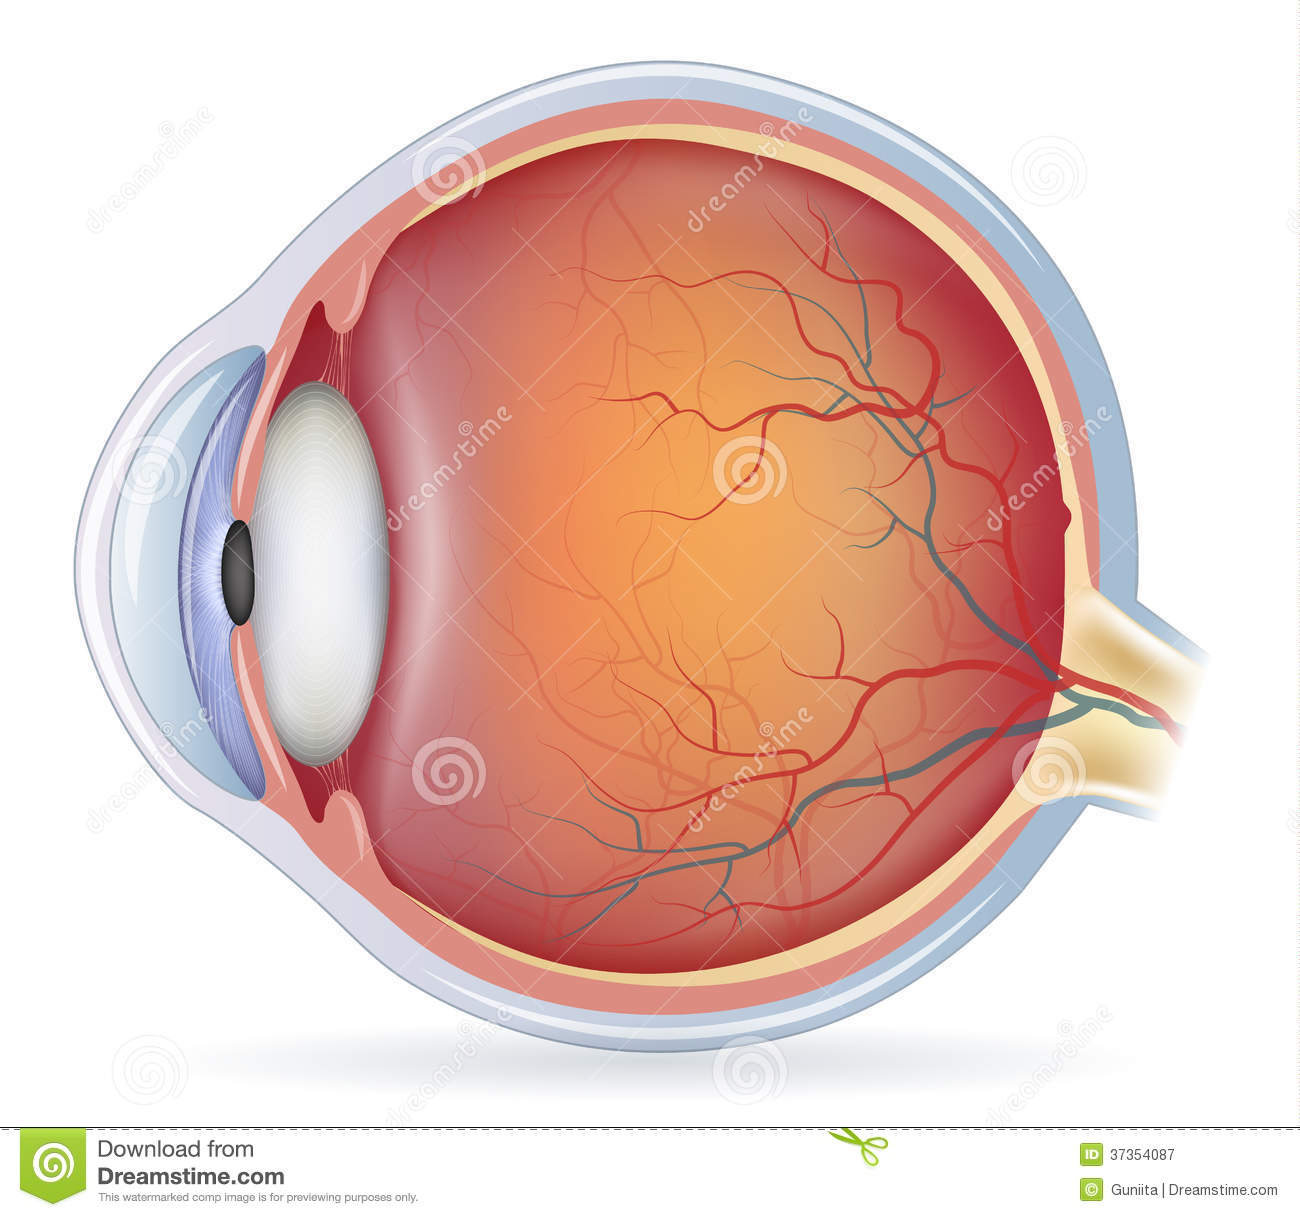 Human Eye Anatomy Stock Vector Illustration Of Diagram